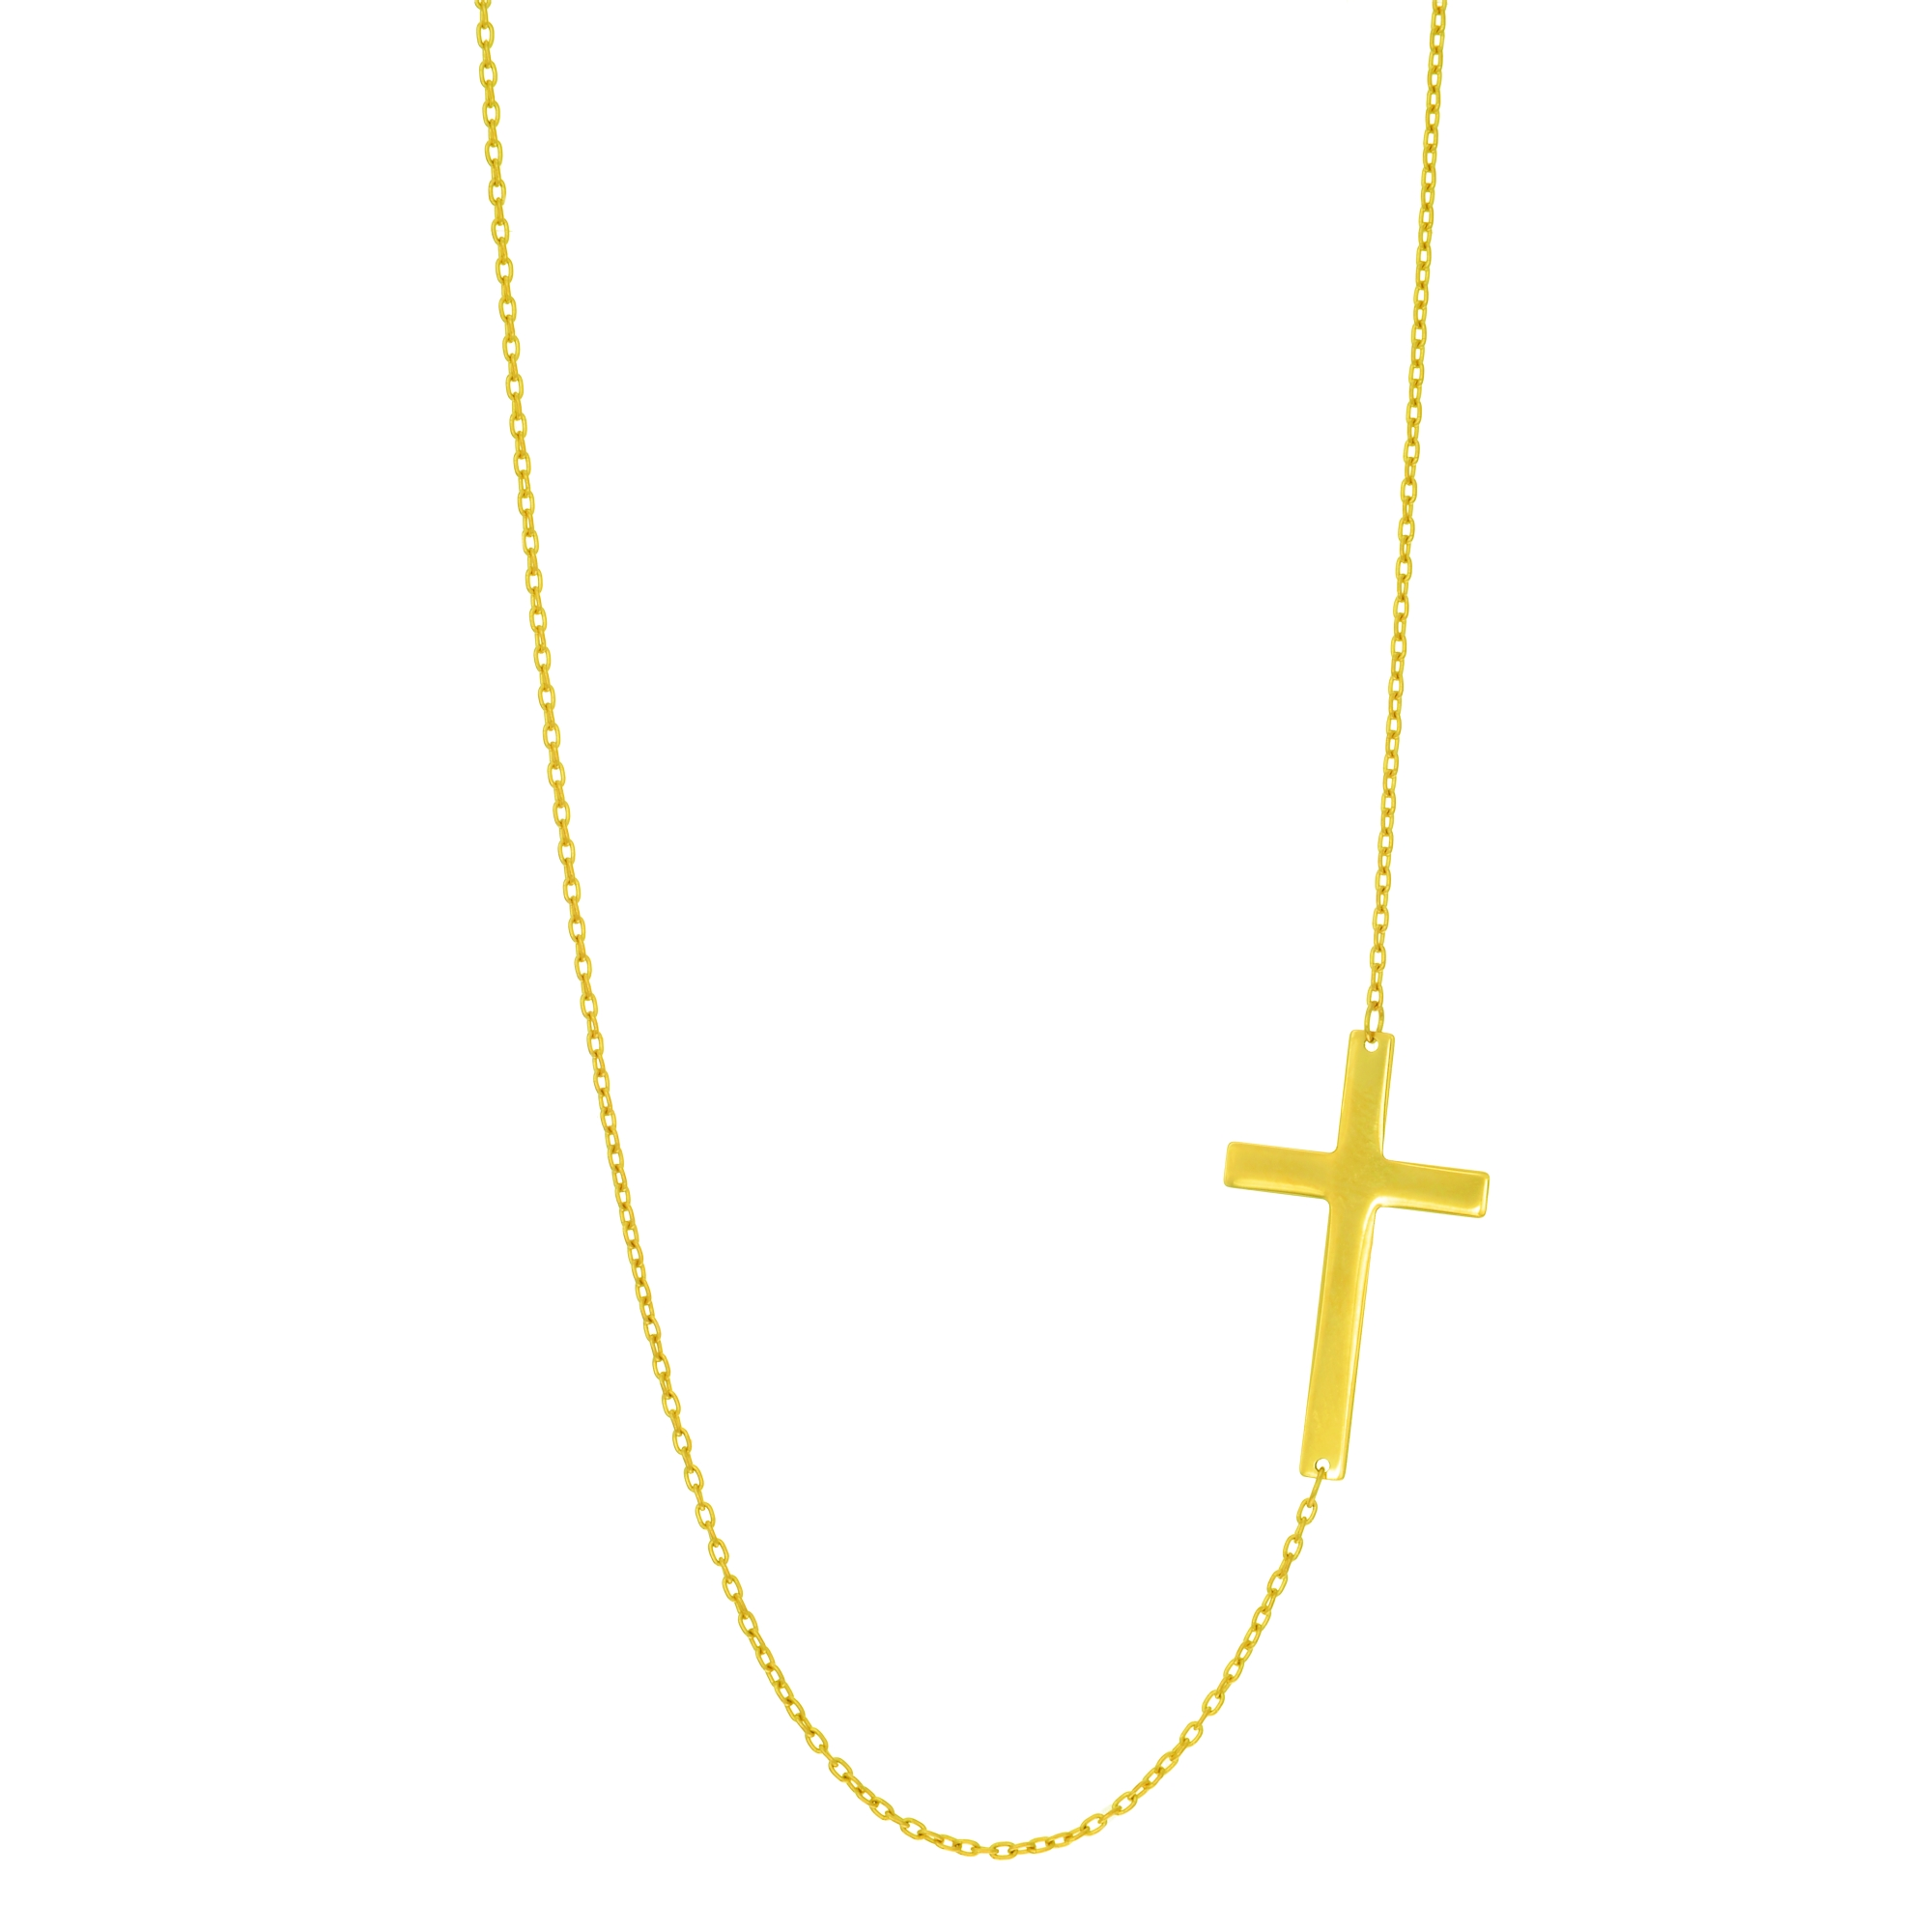 14k Yellow Gold Sideways Cubic Zirconia Cross Necklace Adjustable Chain 18 Inches